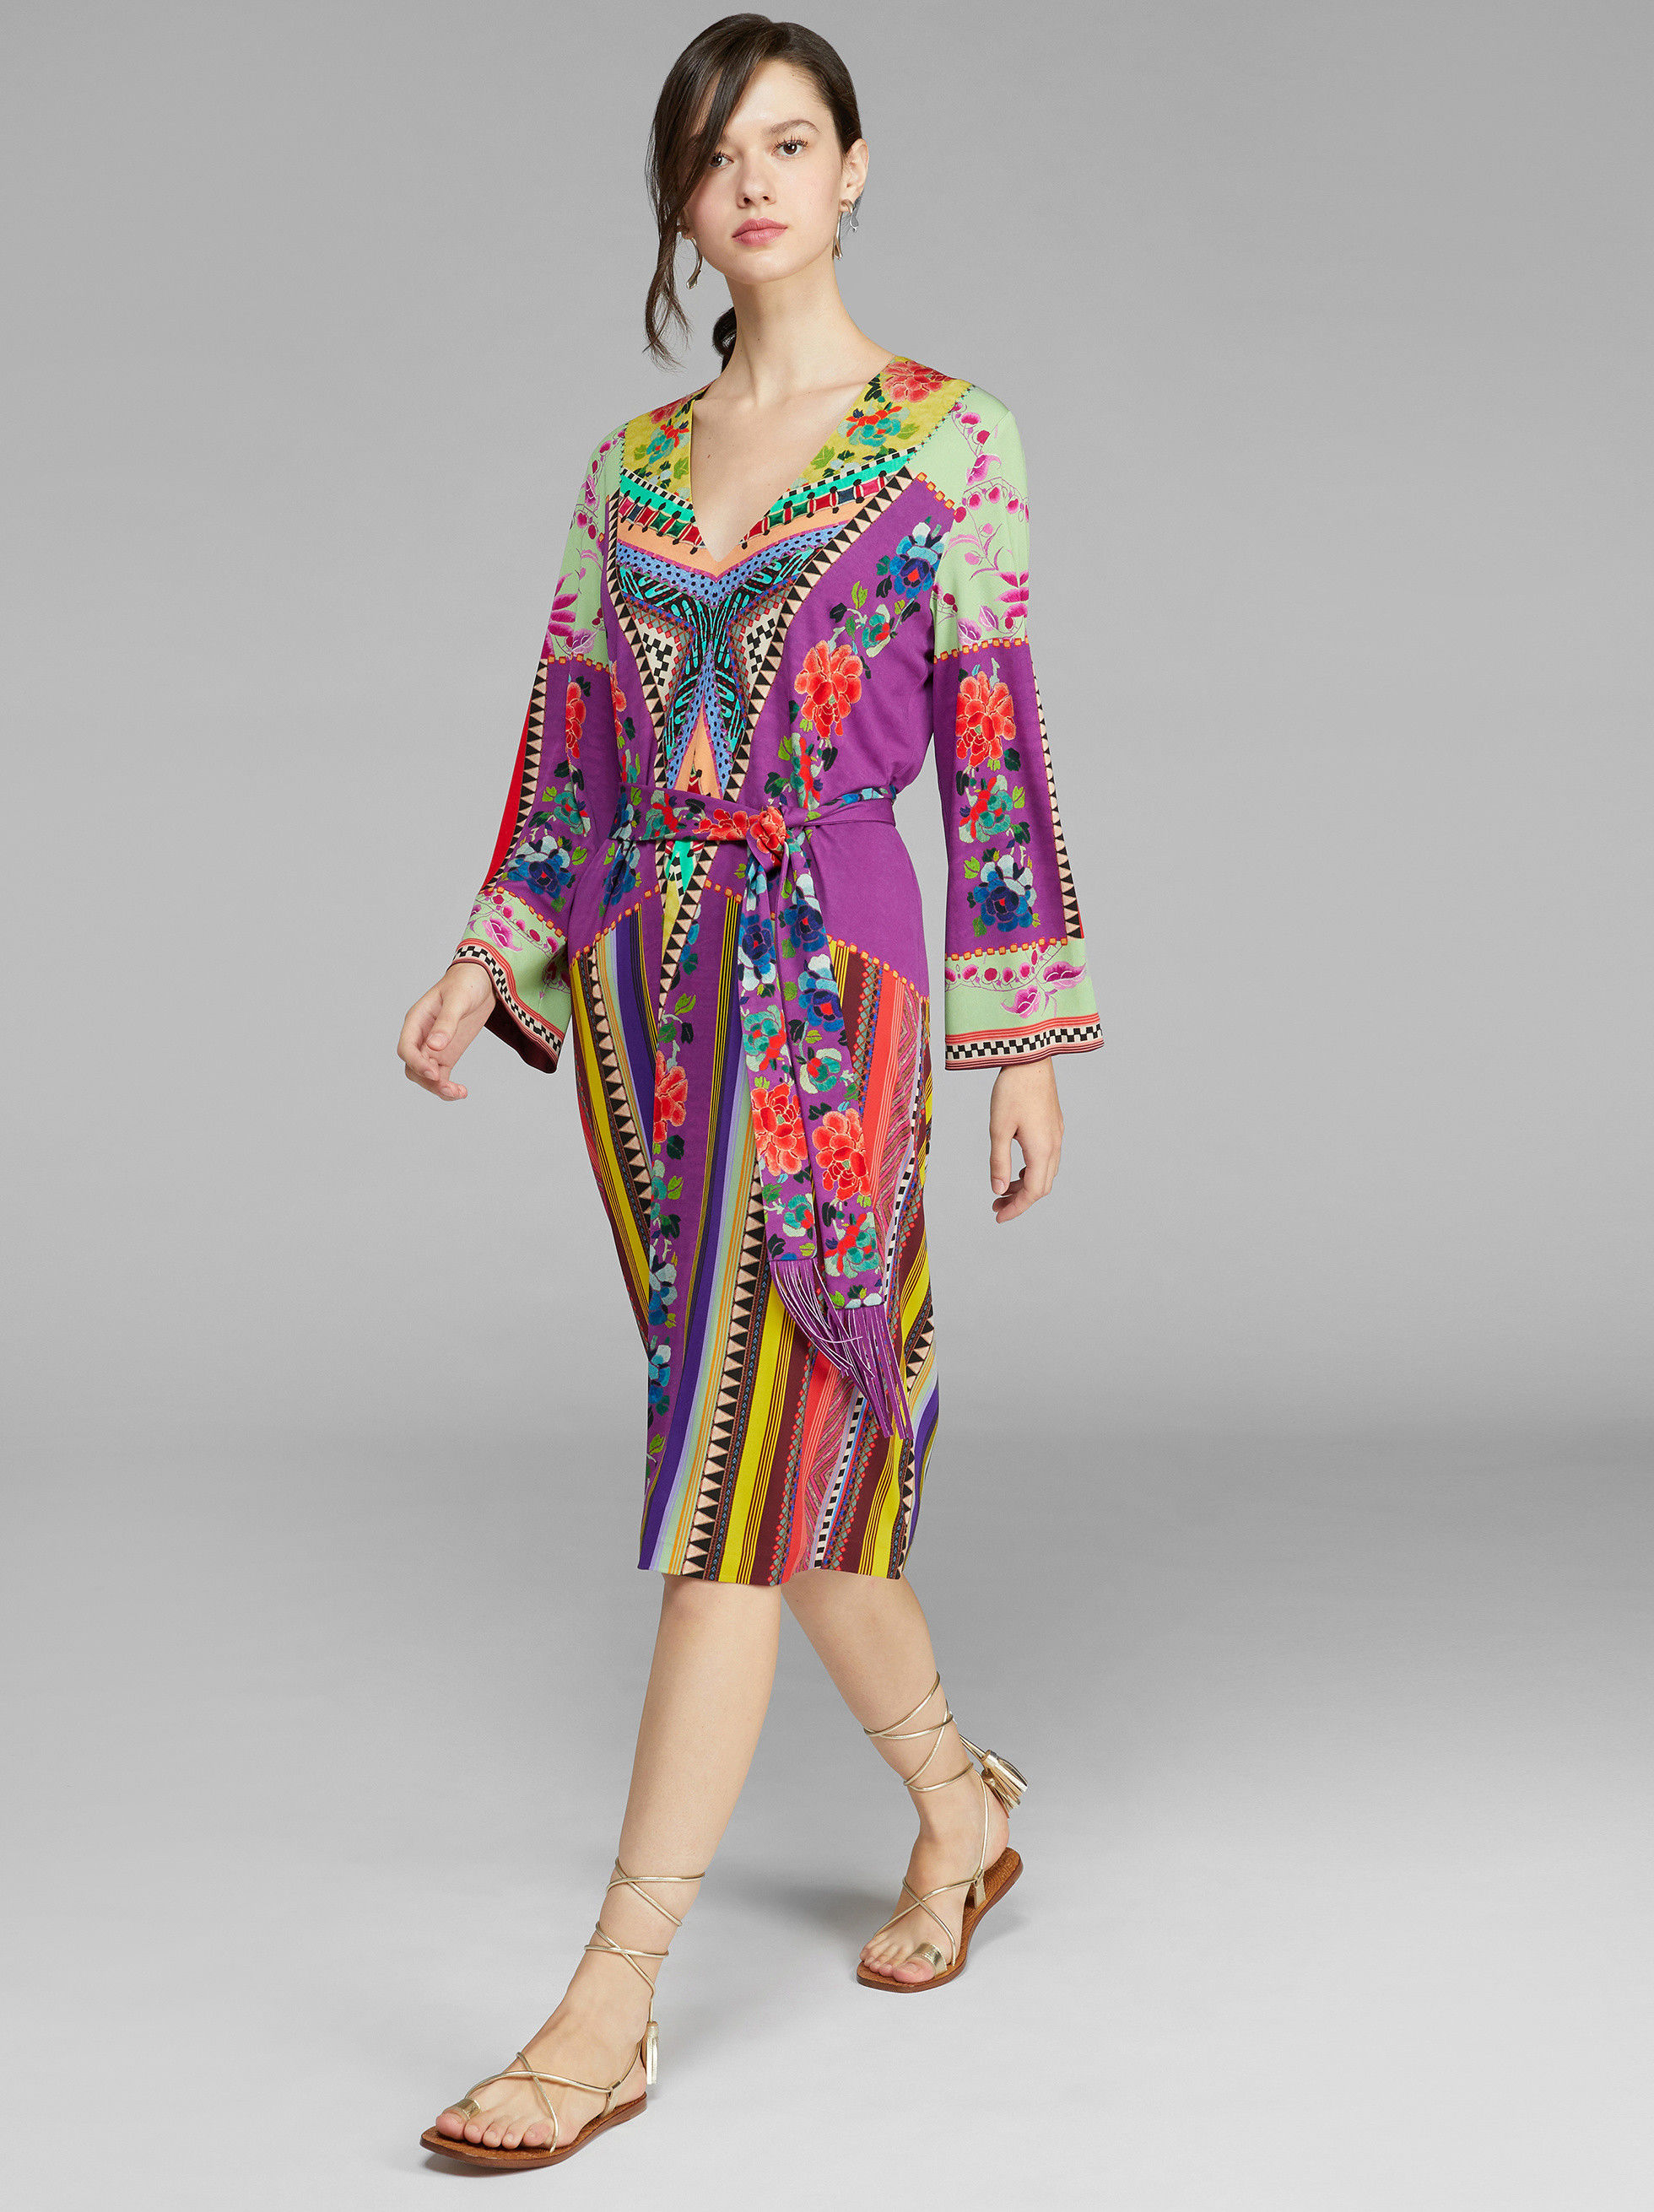 PATCHWORK PRINT JERSEY DRESS